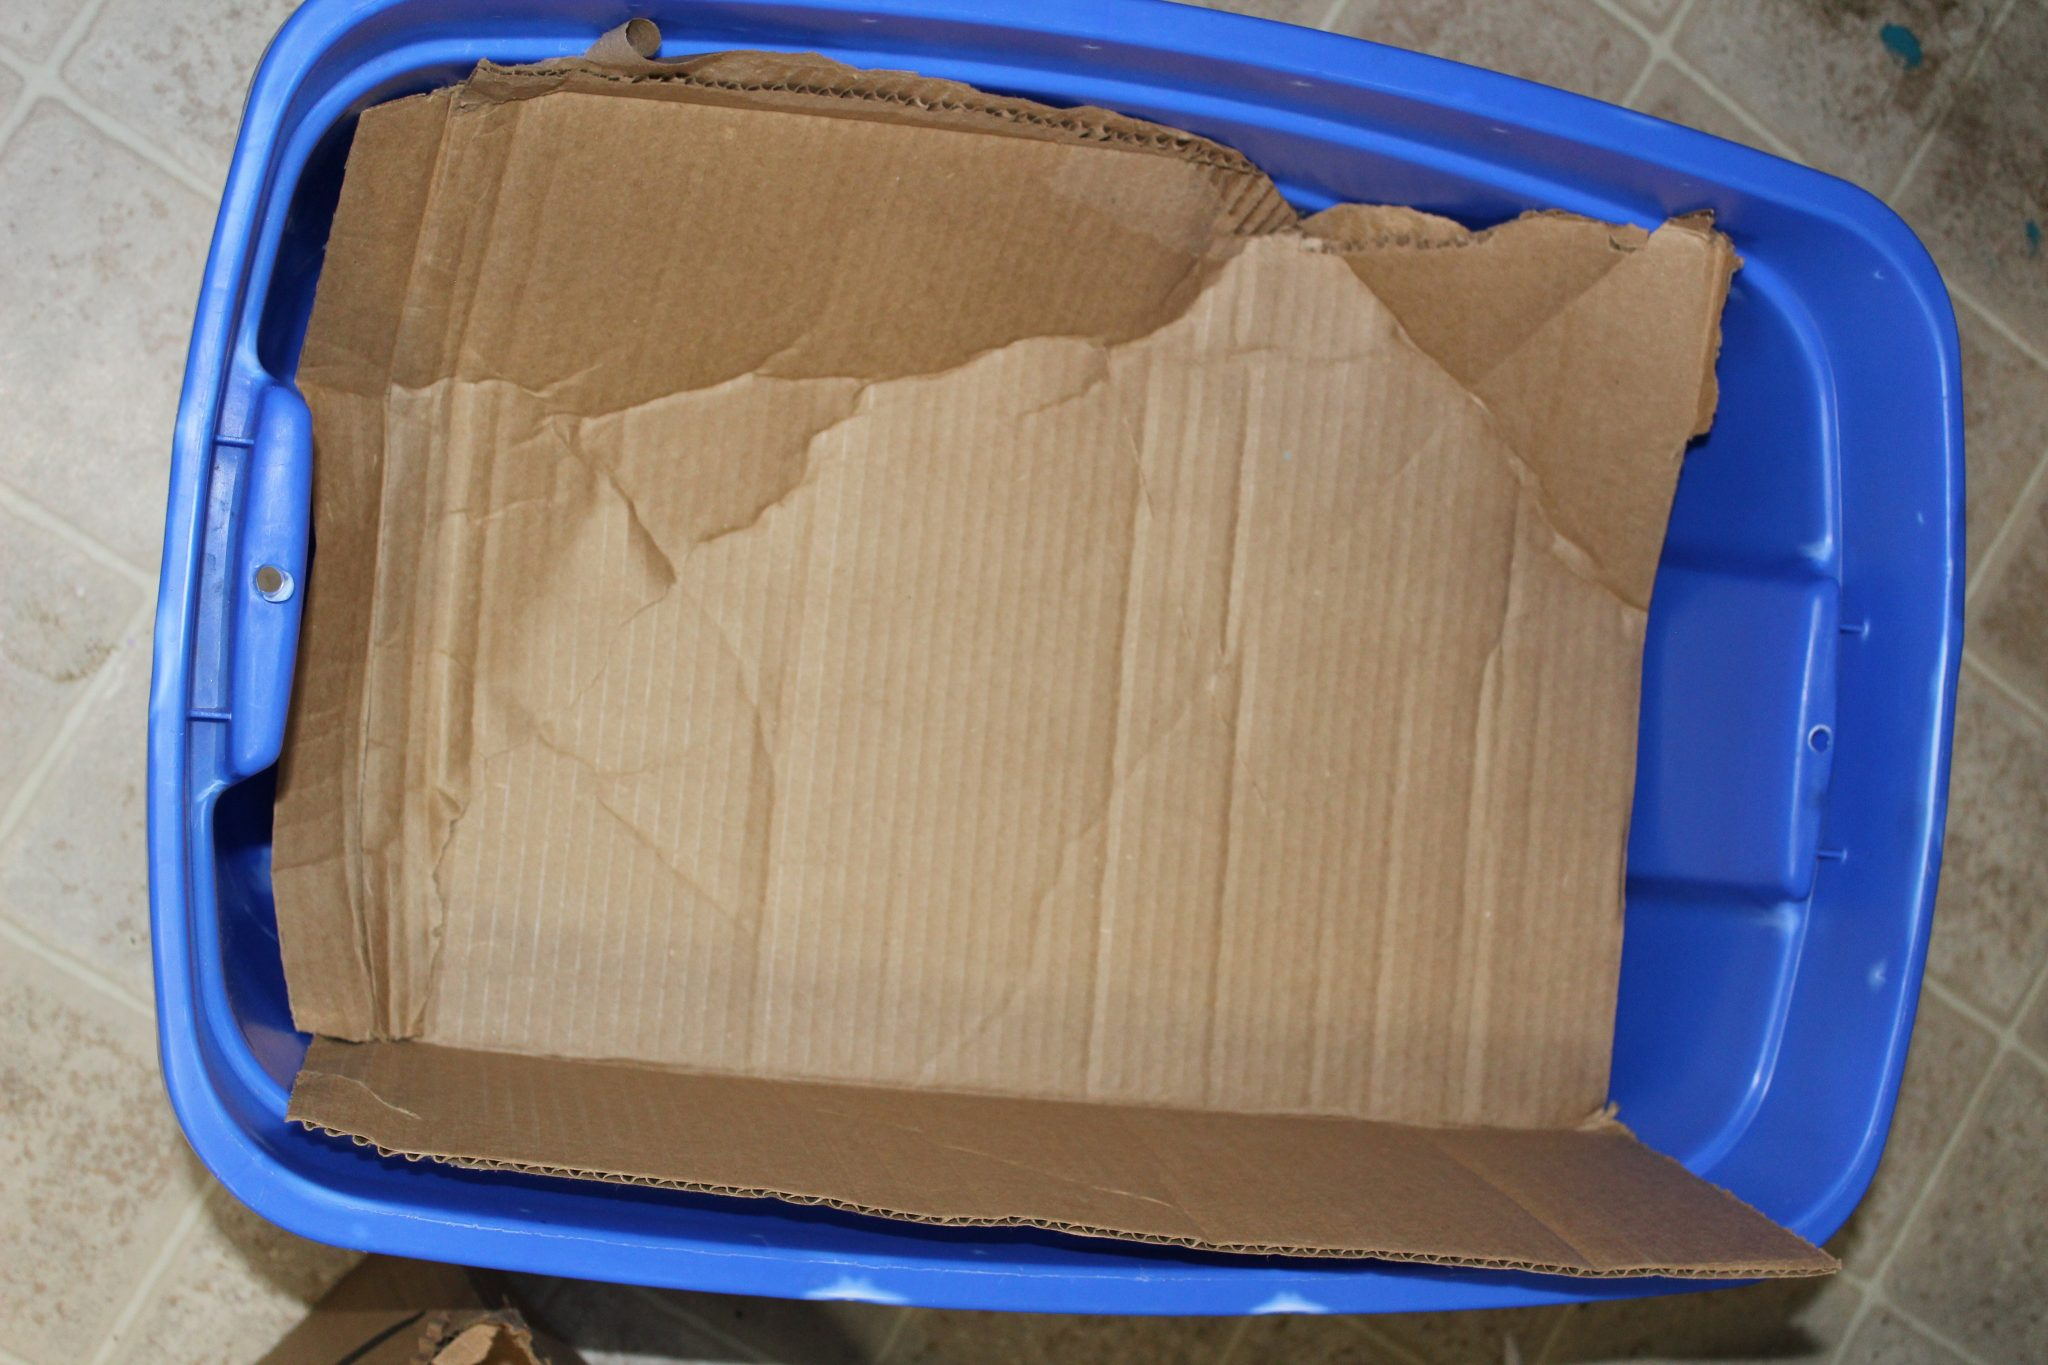 blue tote with cardboard covering center